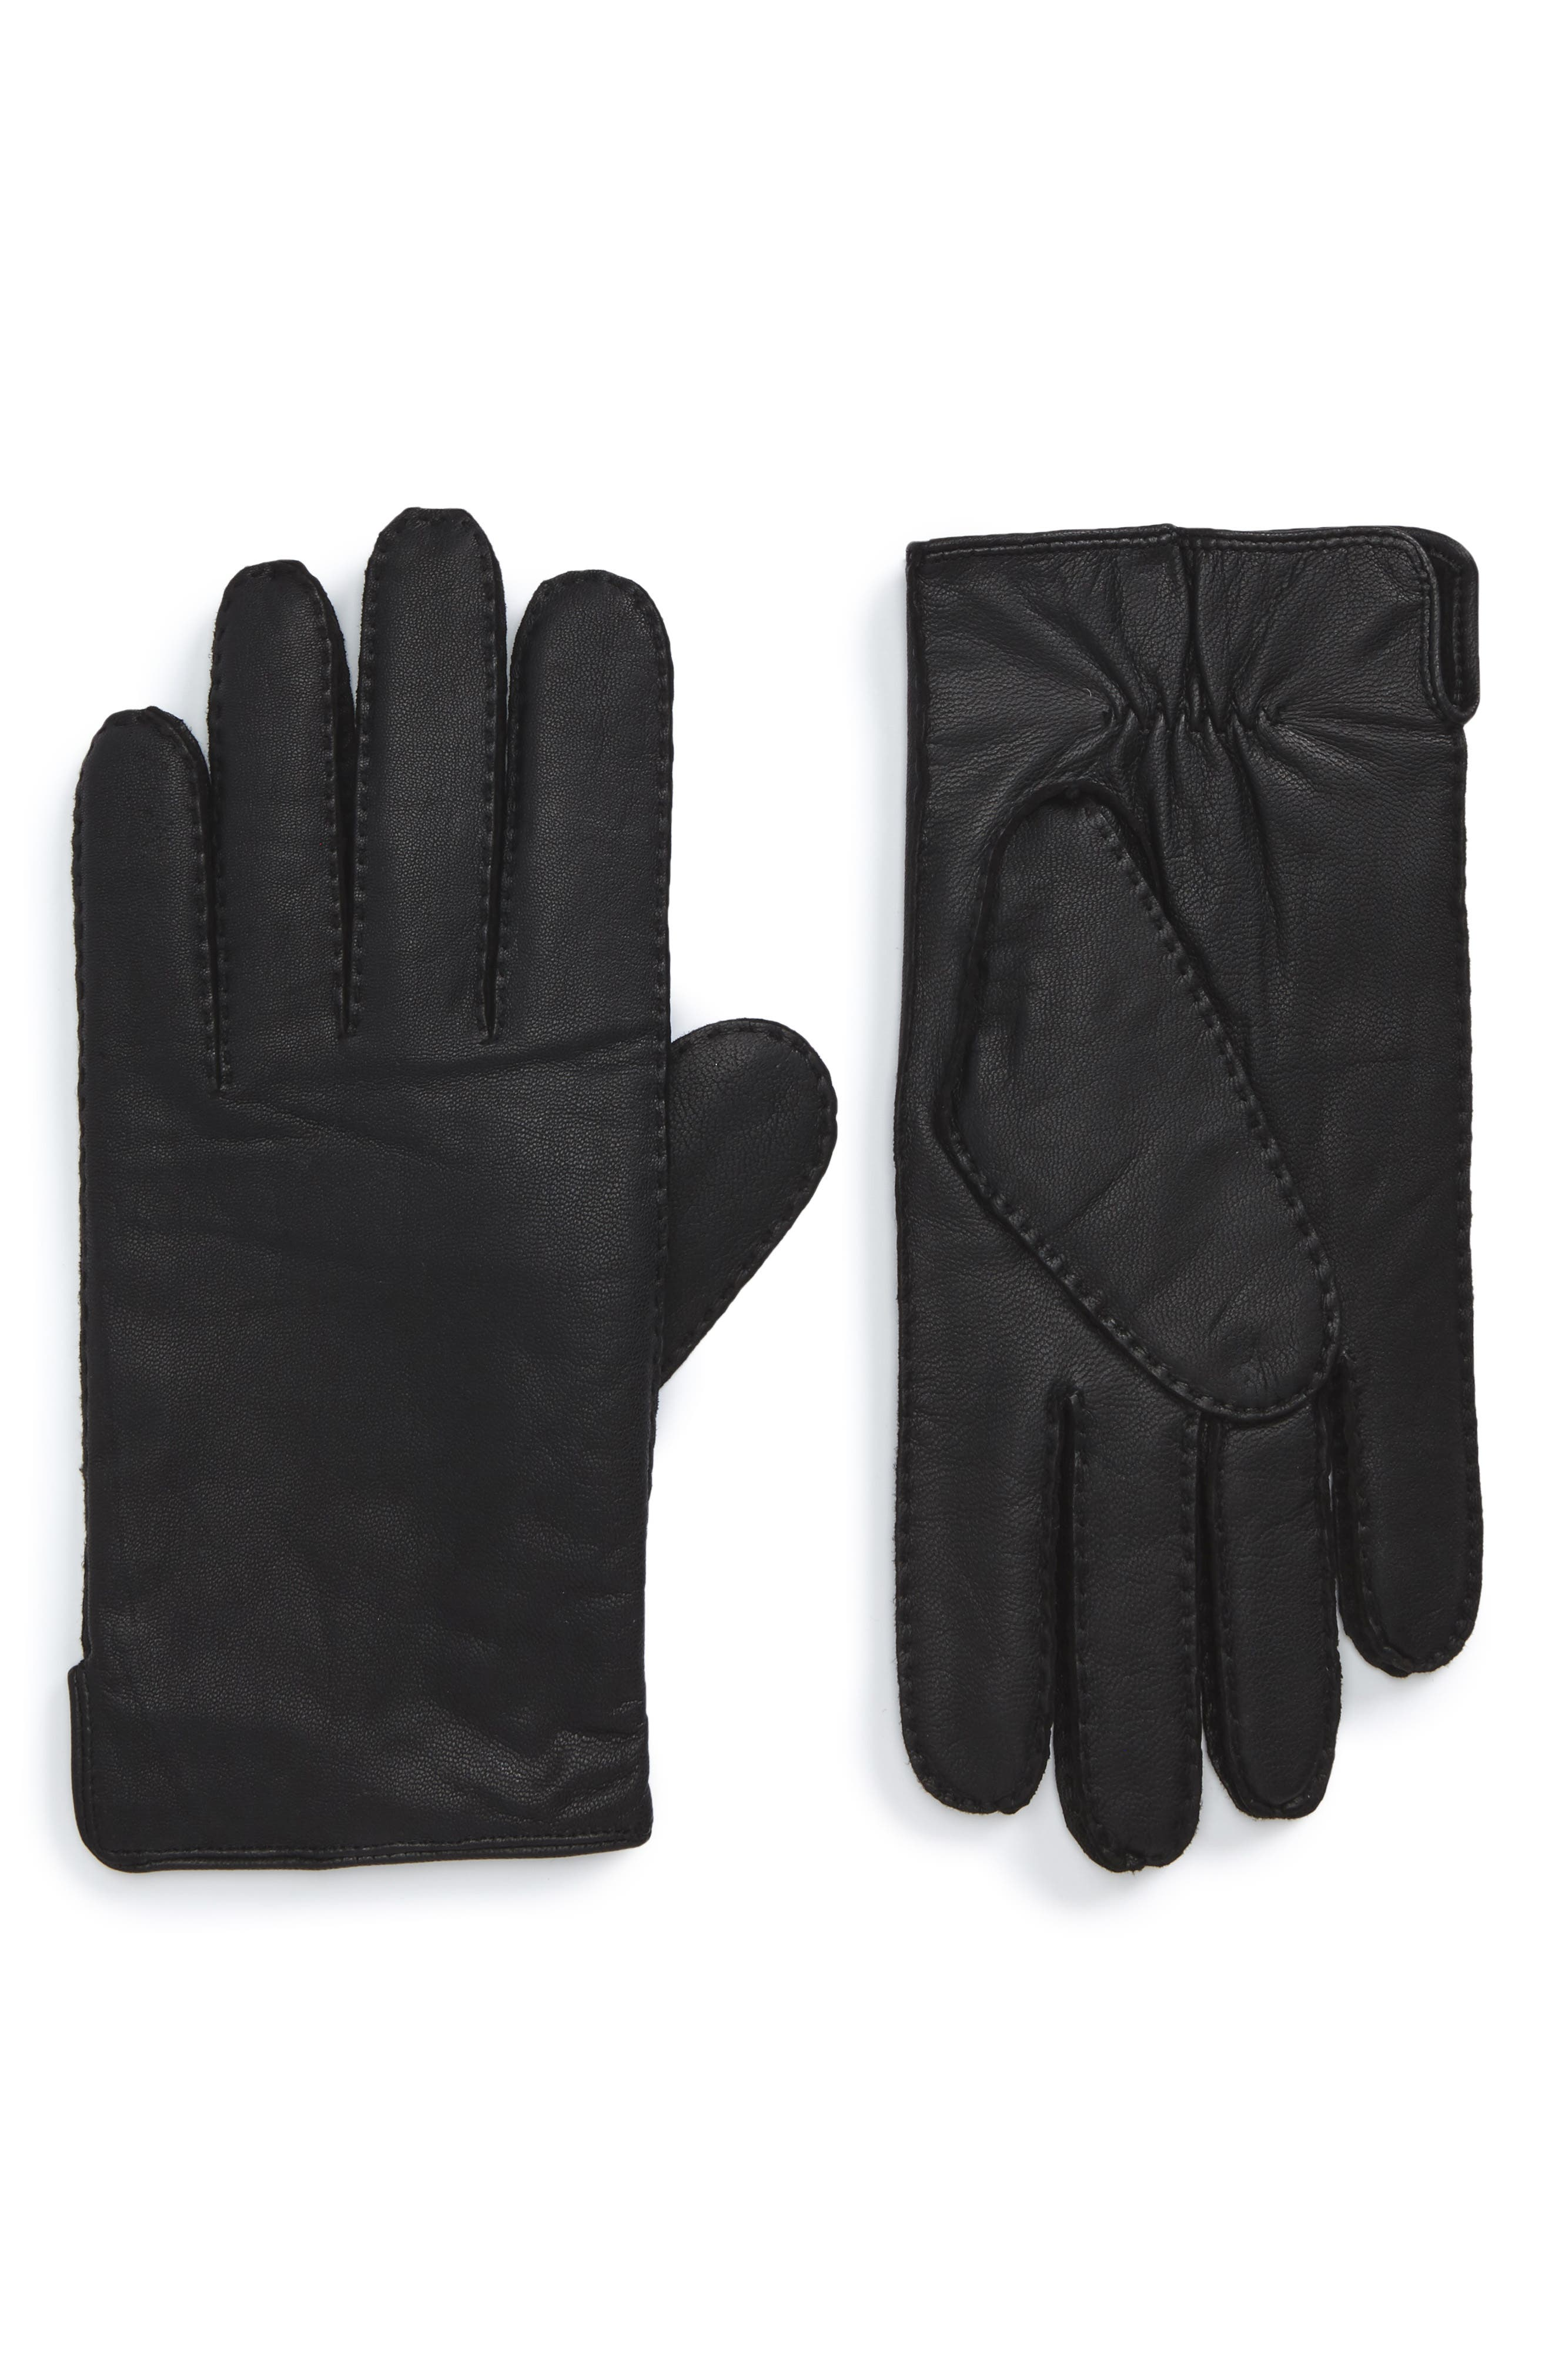 Kanton Leather Gloves,                         Main,                         color,